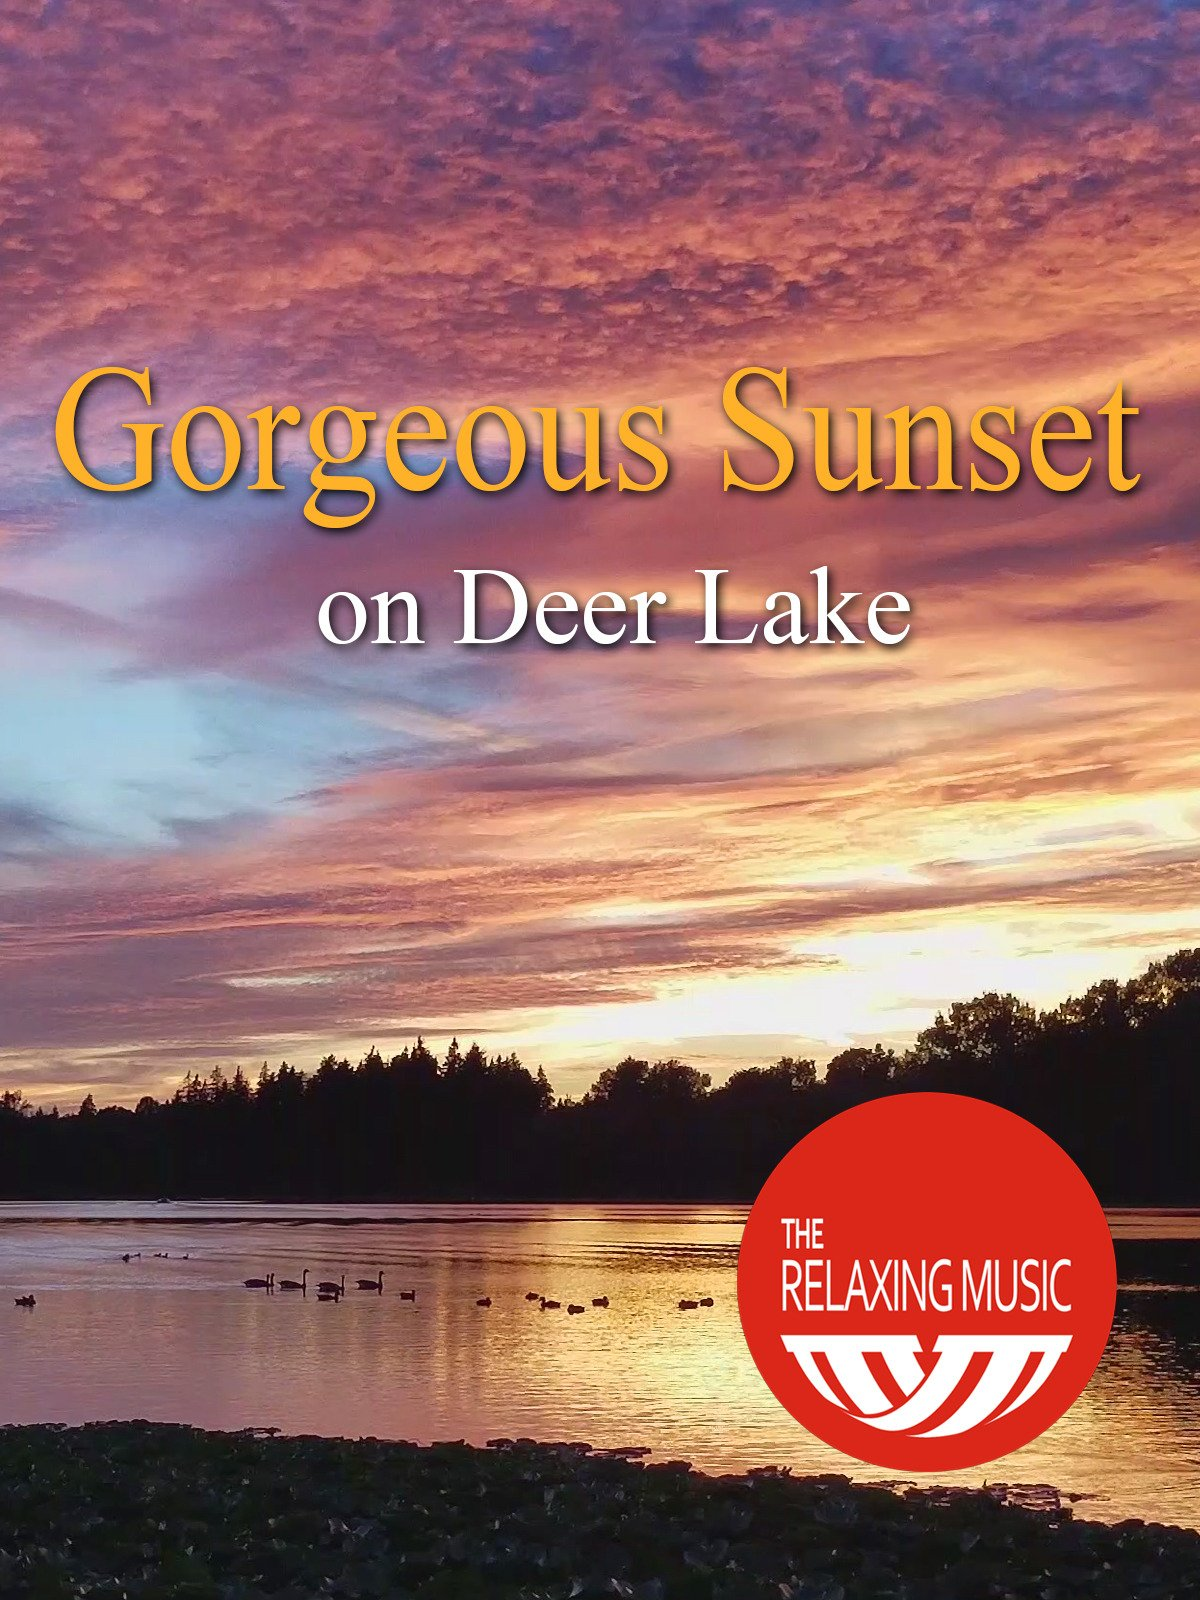 Gorgeous Sunset on Deer Lake on Amazon Prime Instant Video UK